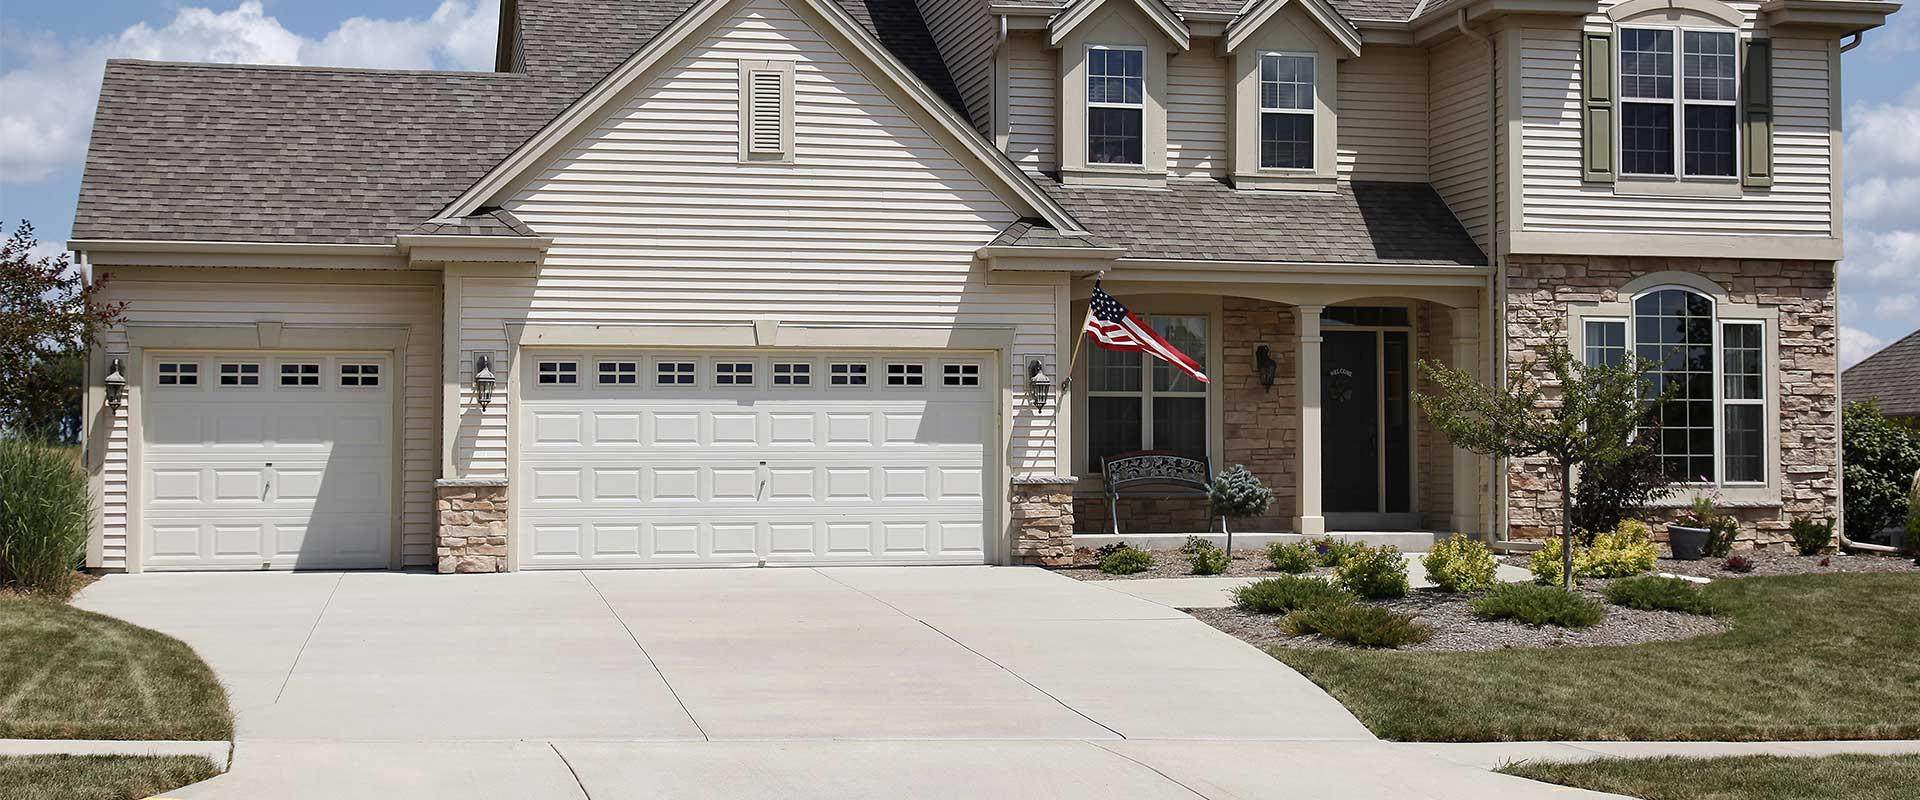 replacement garage for cost best door doors a should home extension much spring springs